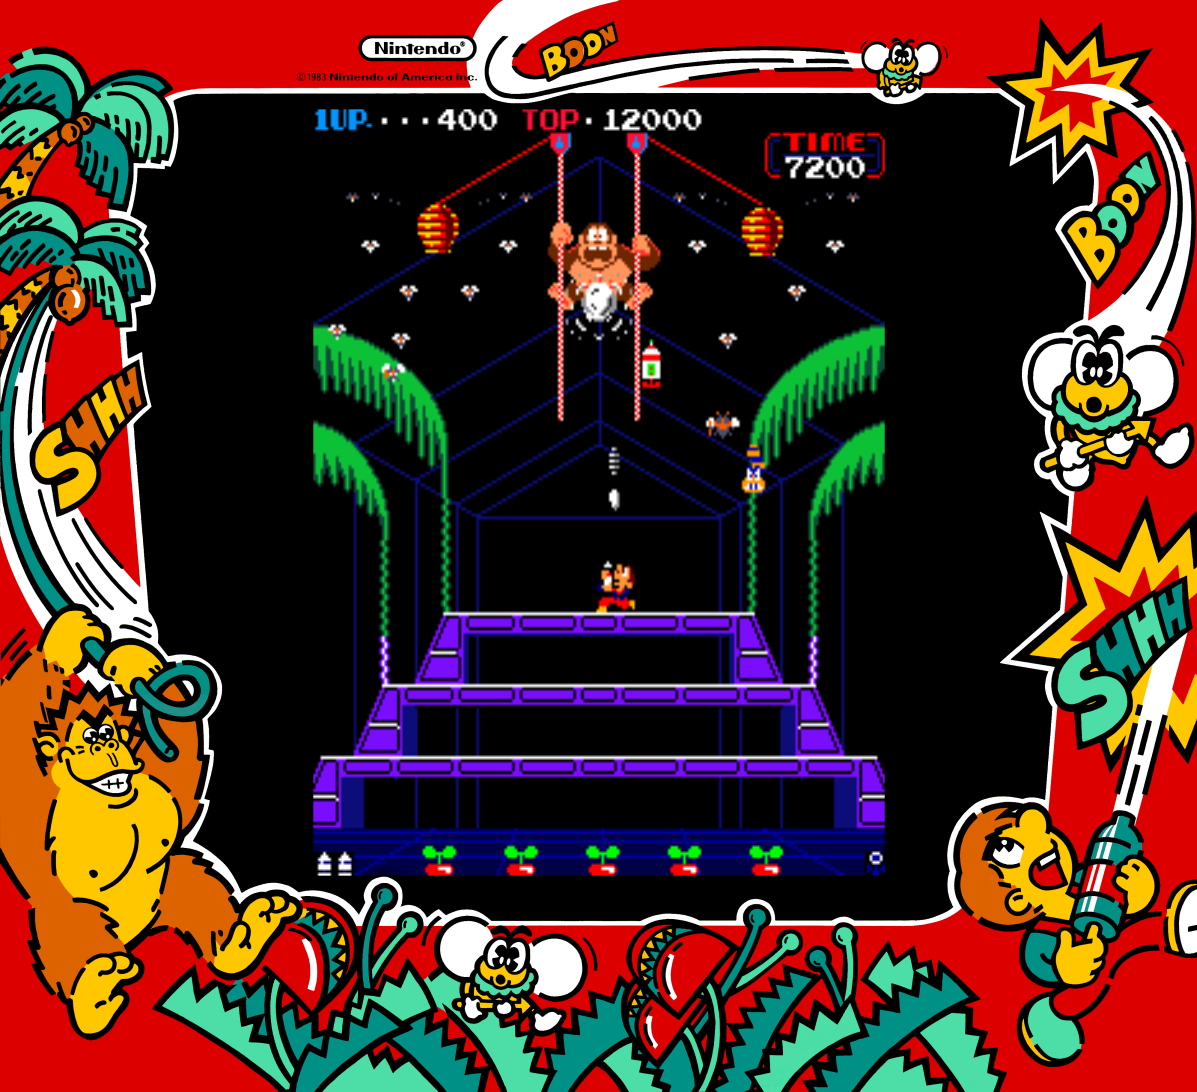 Donkey Kong 3, an arcade video game by Nintendo 1983